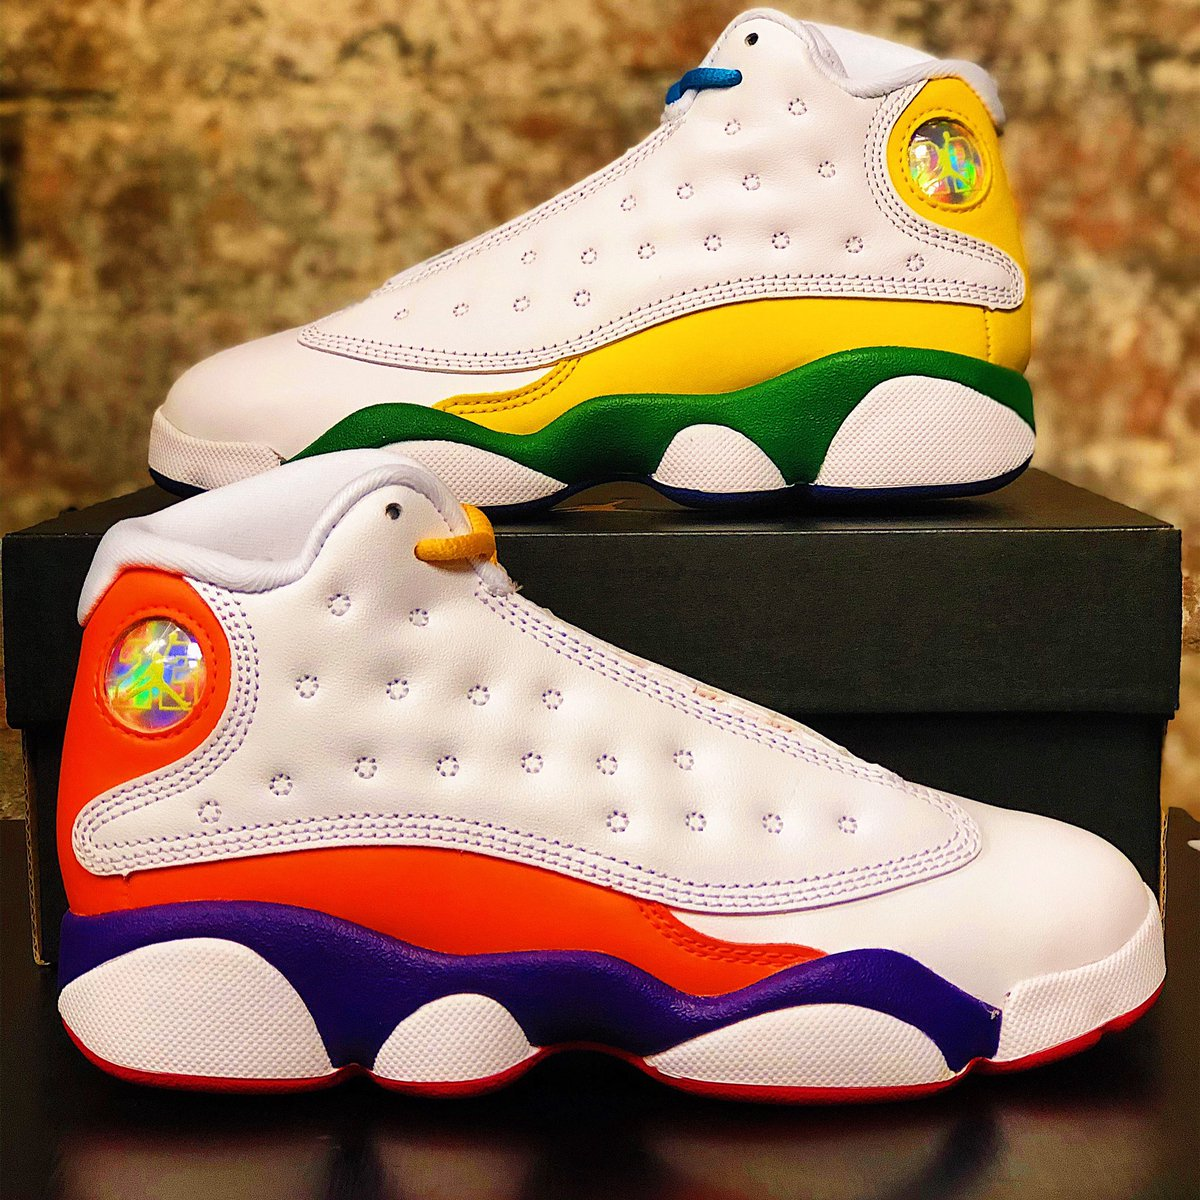 Air Jordan 13 Playground GS & Kids sizes release today @NBAStore NYC!